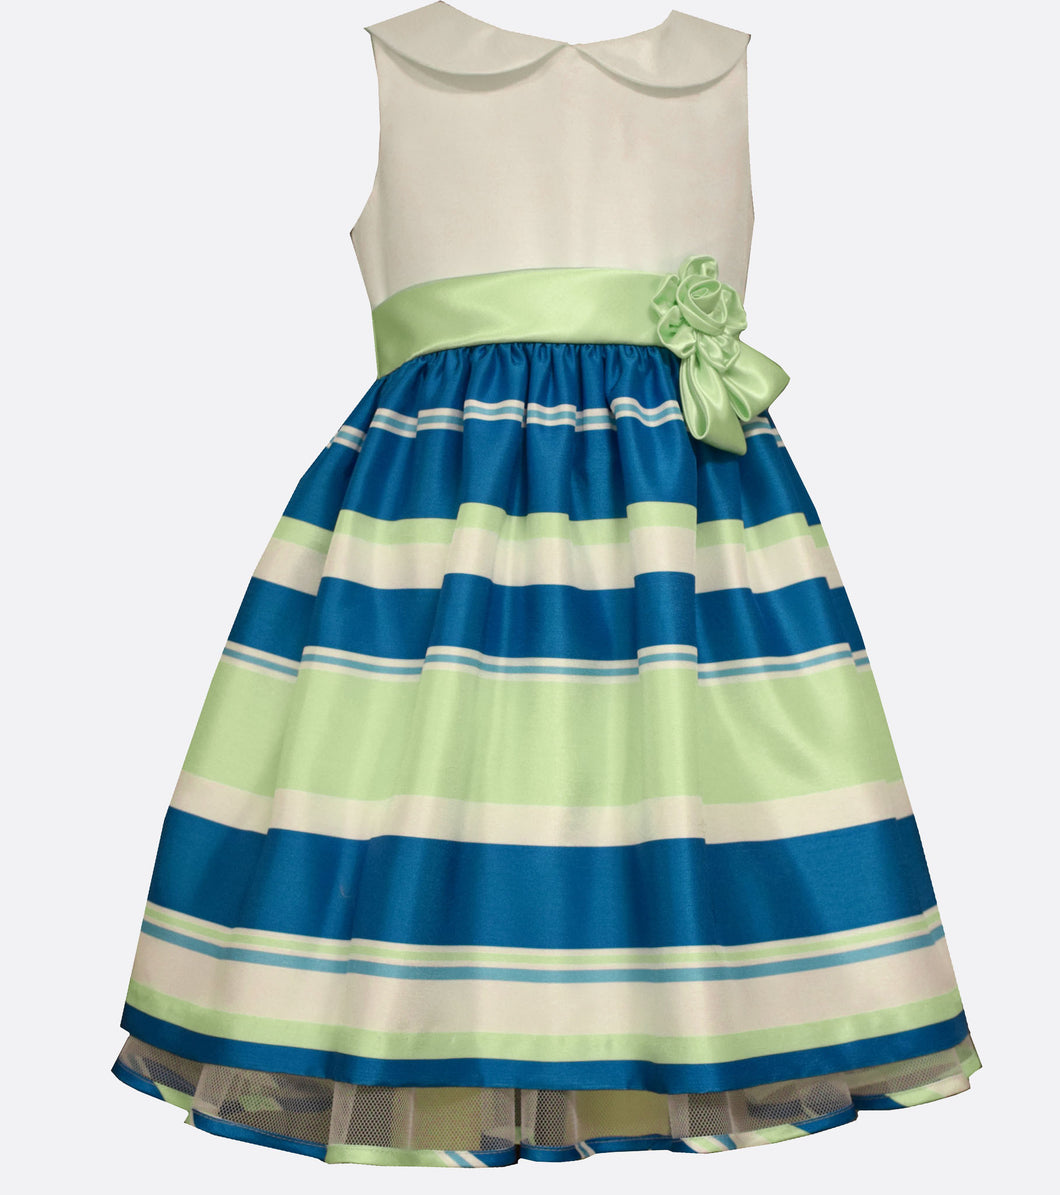 Bonnie Jean teal and green stripe shantung party dress